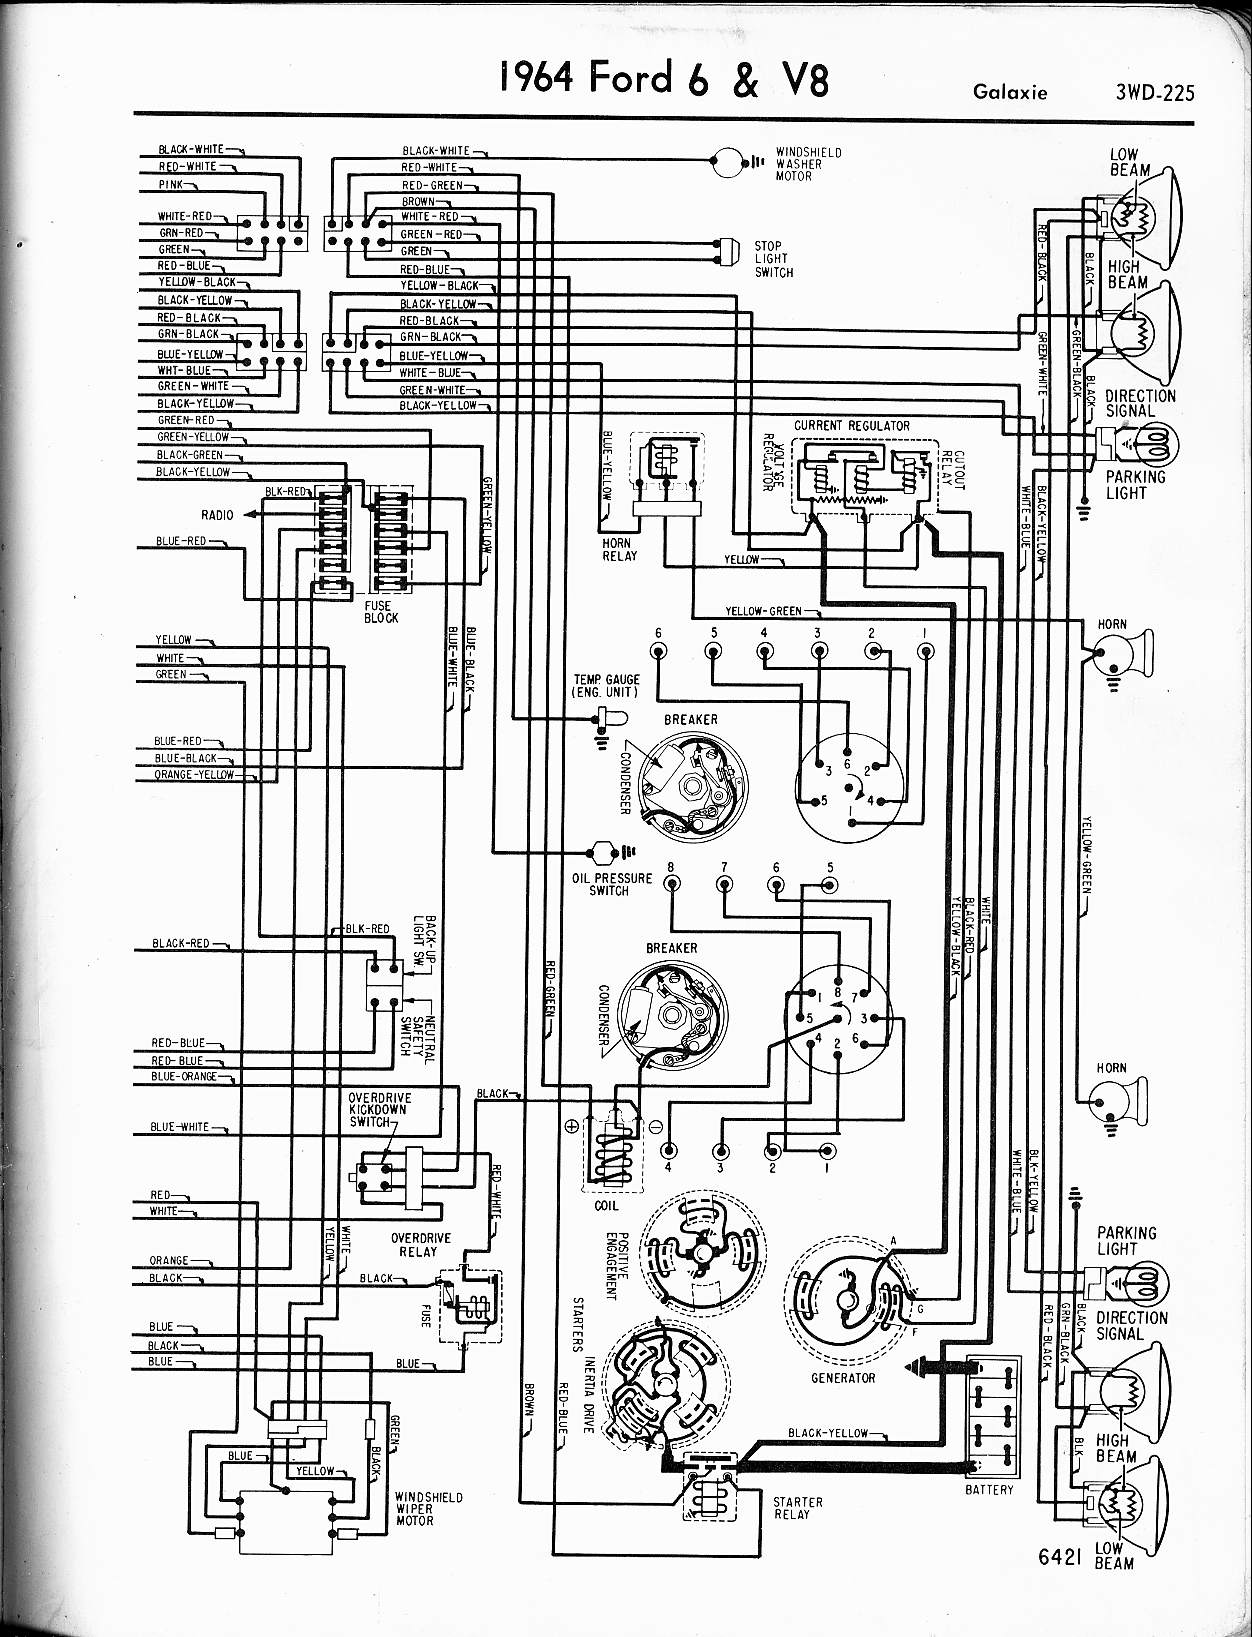 57 65 ford wiring diagrams ford econoline headlight wiring diagram 1964 6 &  v8 galaxie right